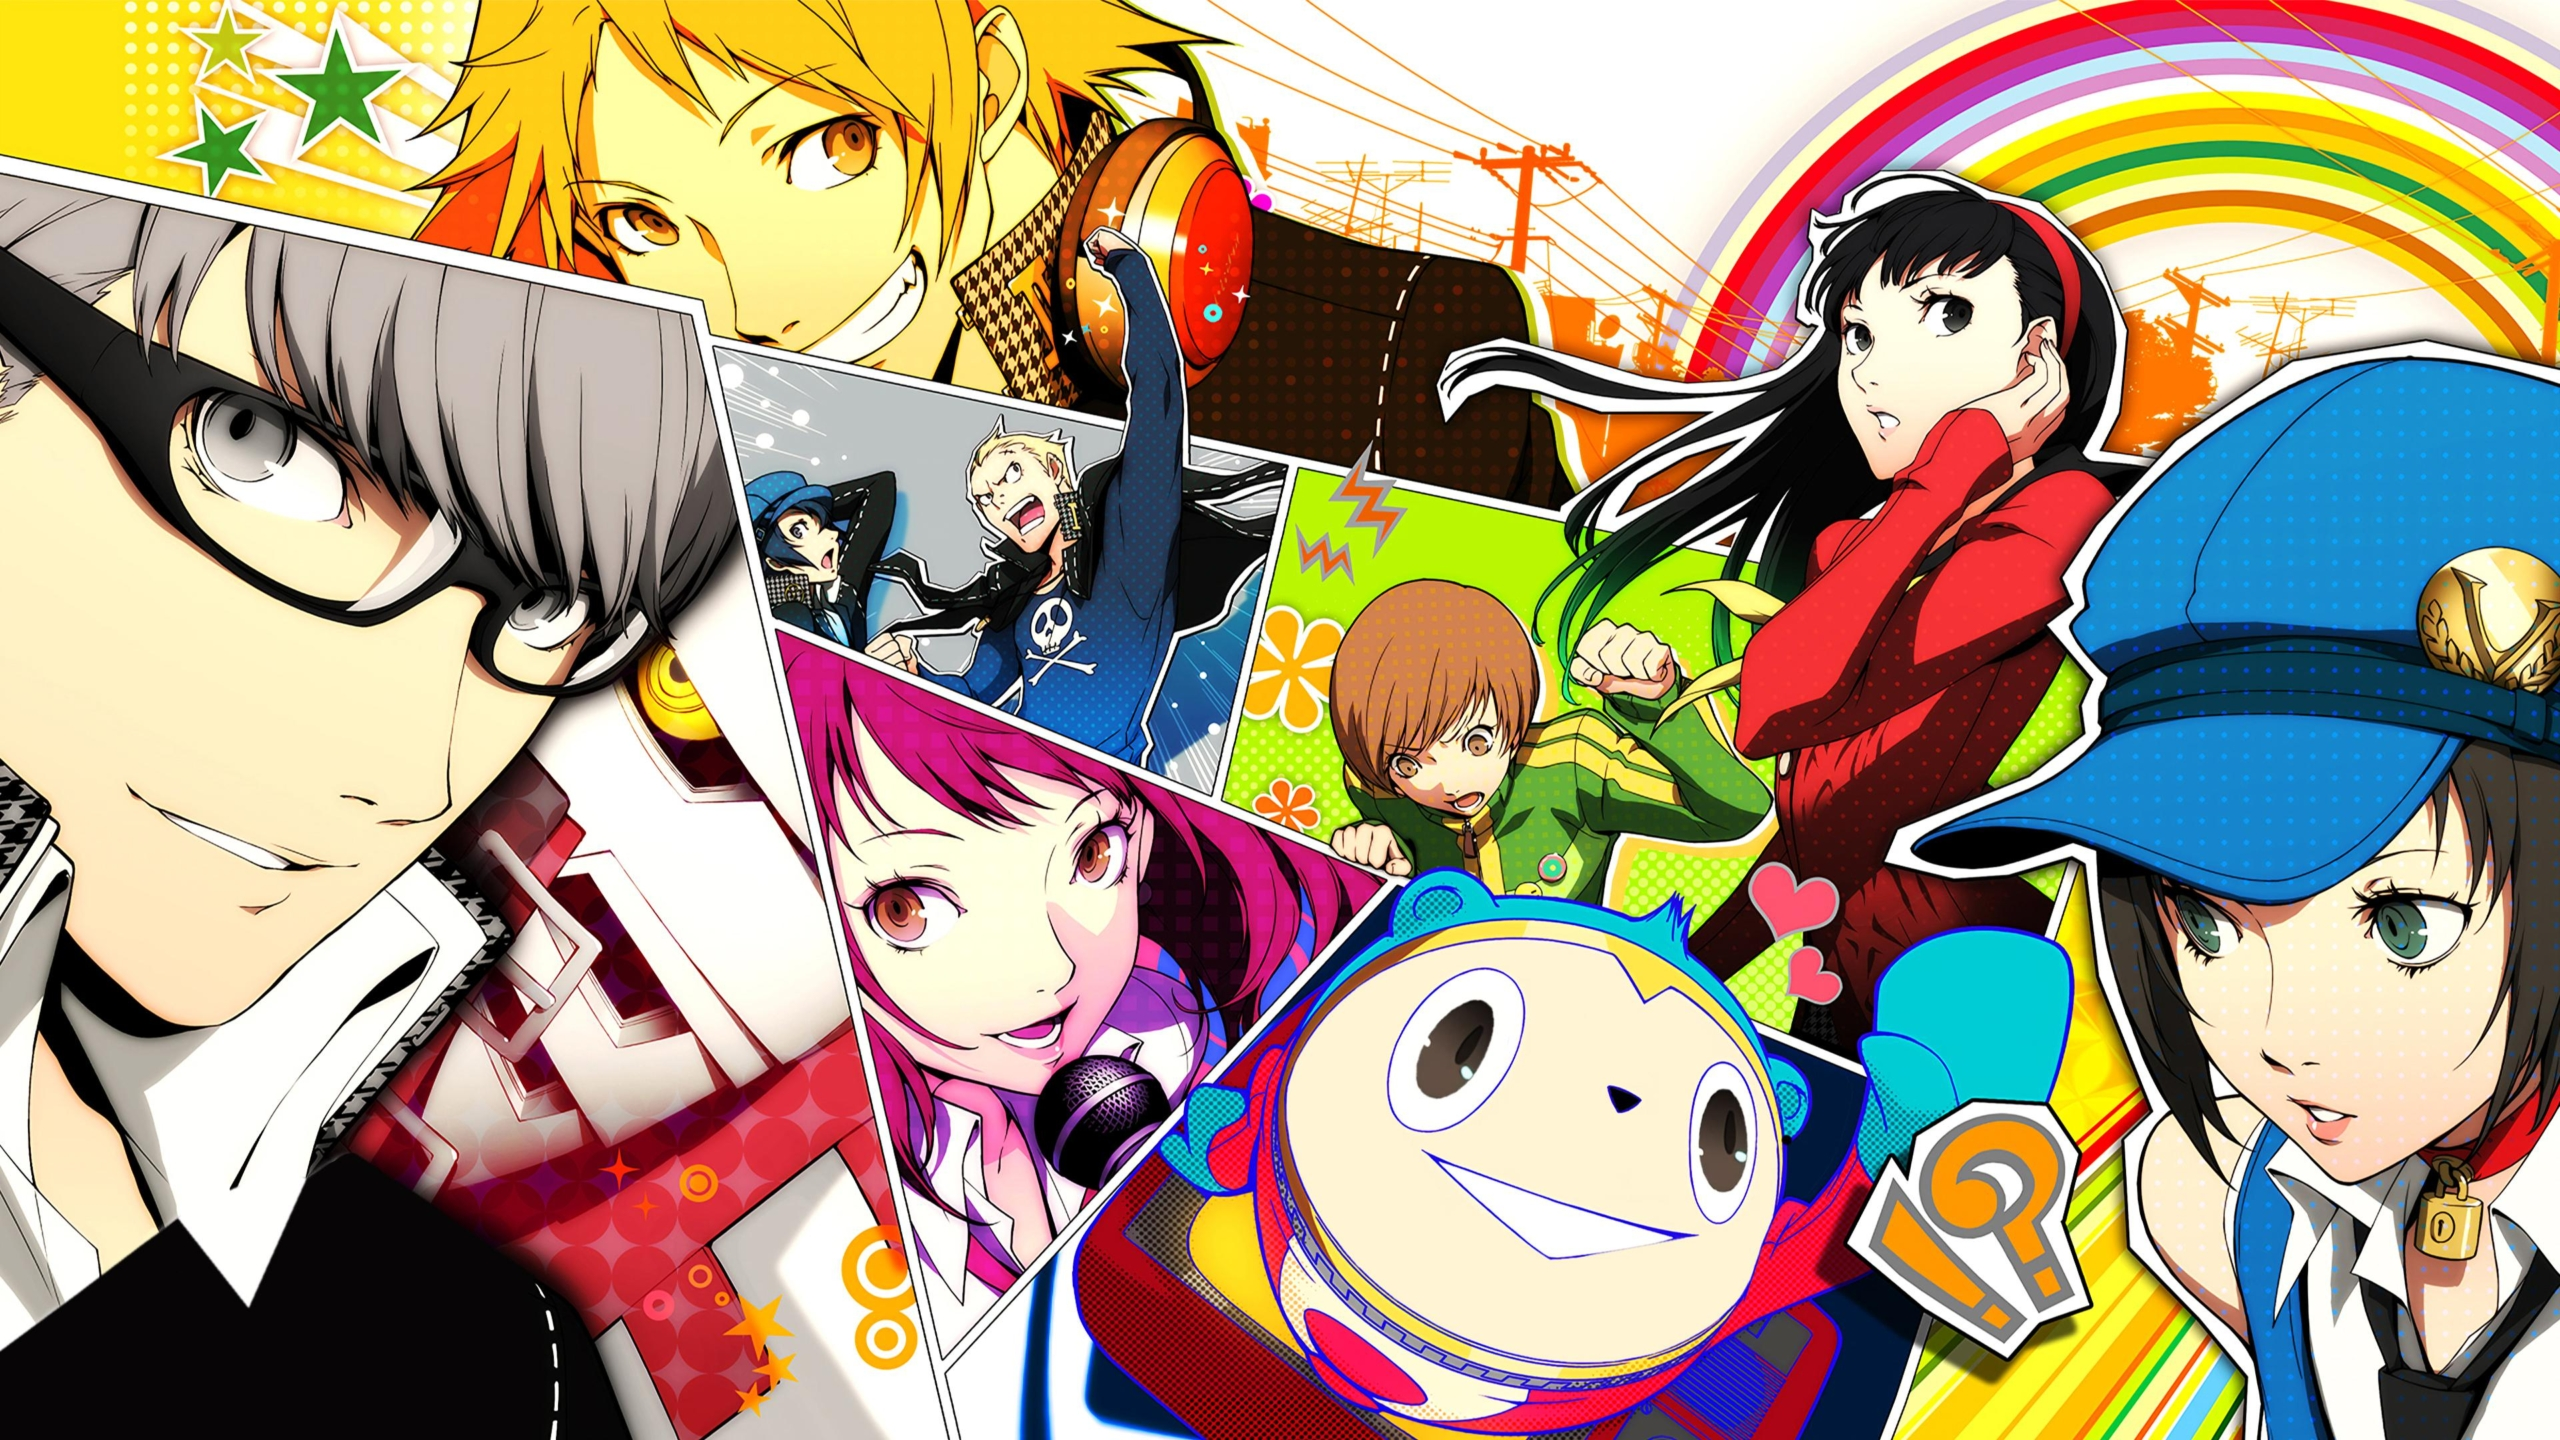 Best Persona 4 wallpaper design – Where to Get Personalised Background for Your Computer